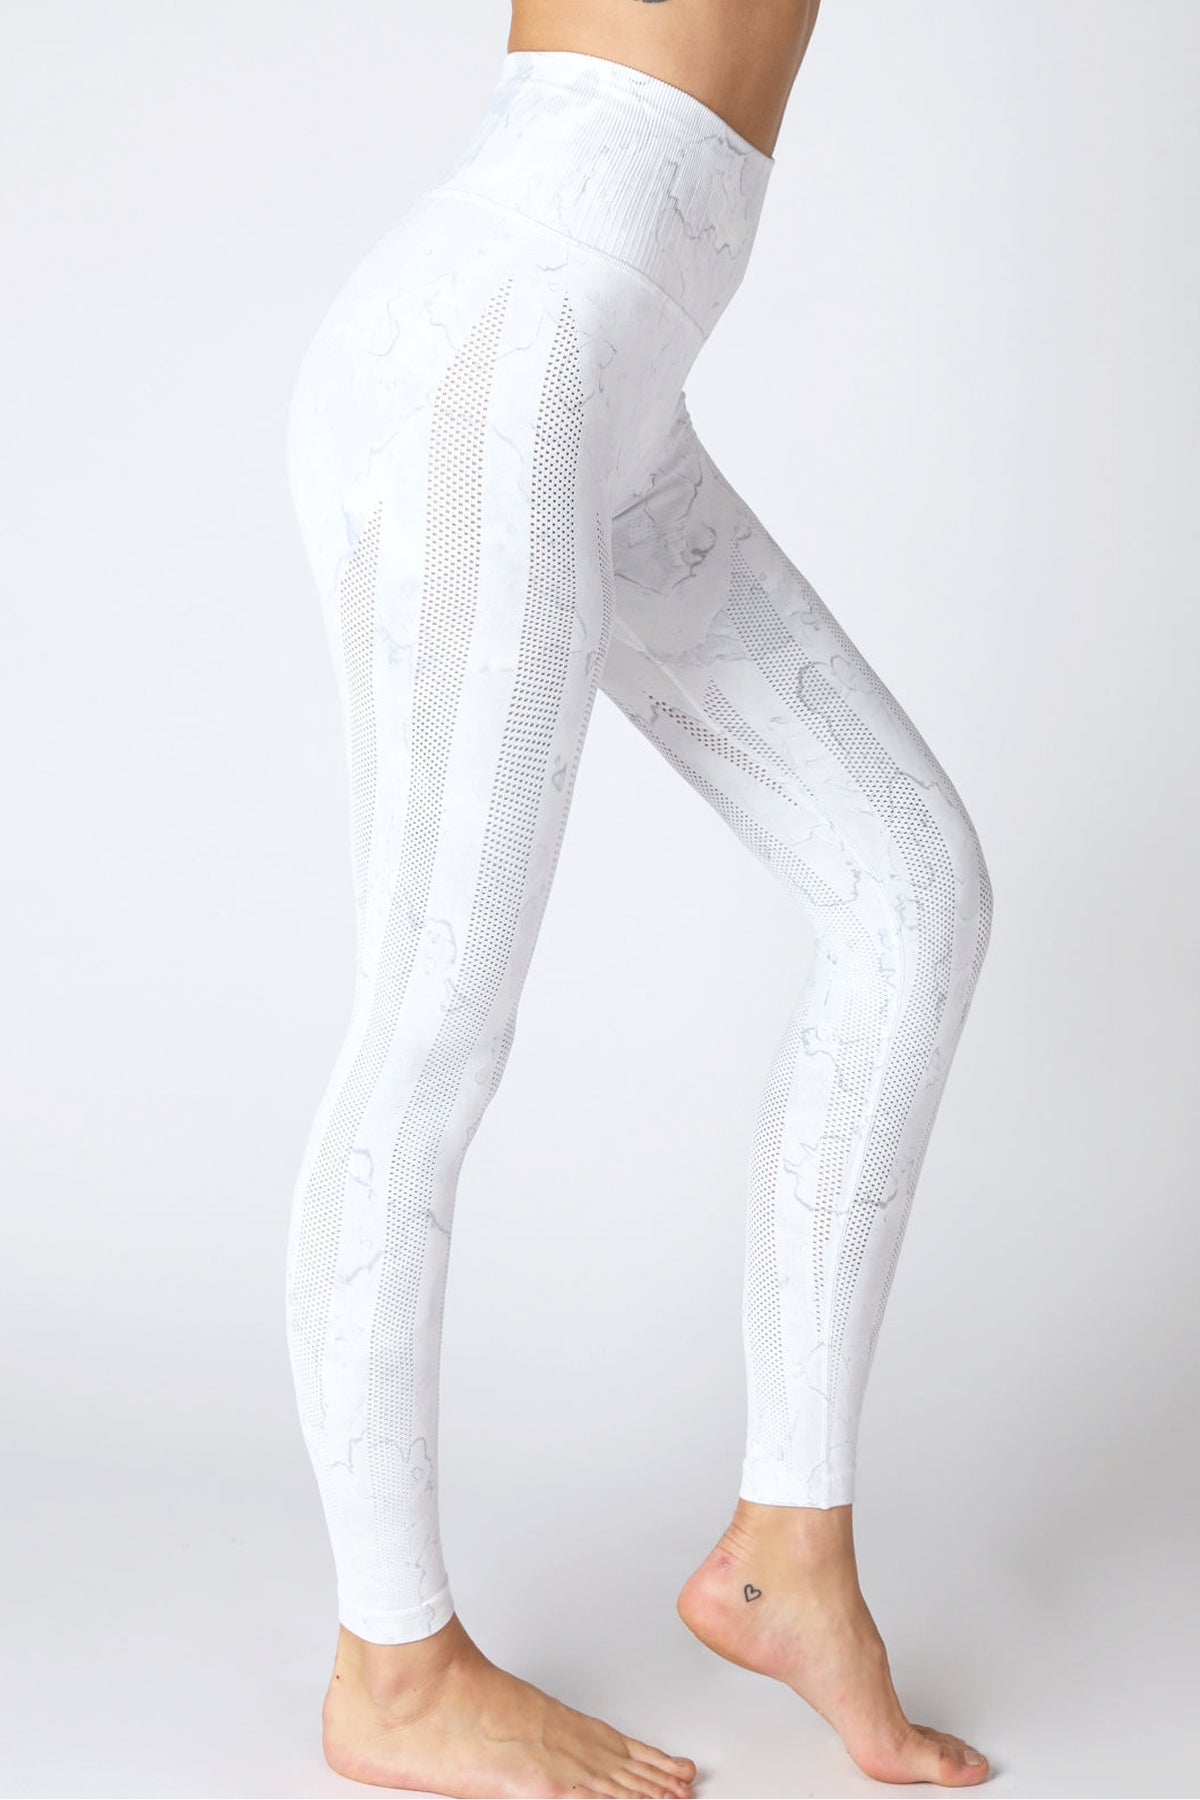 Breezy Legging Splash Series in Cool Grey/Bubble Splash